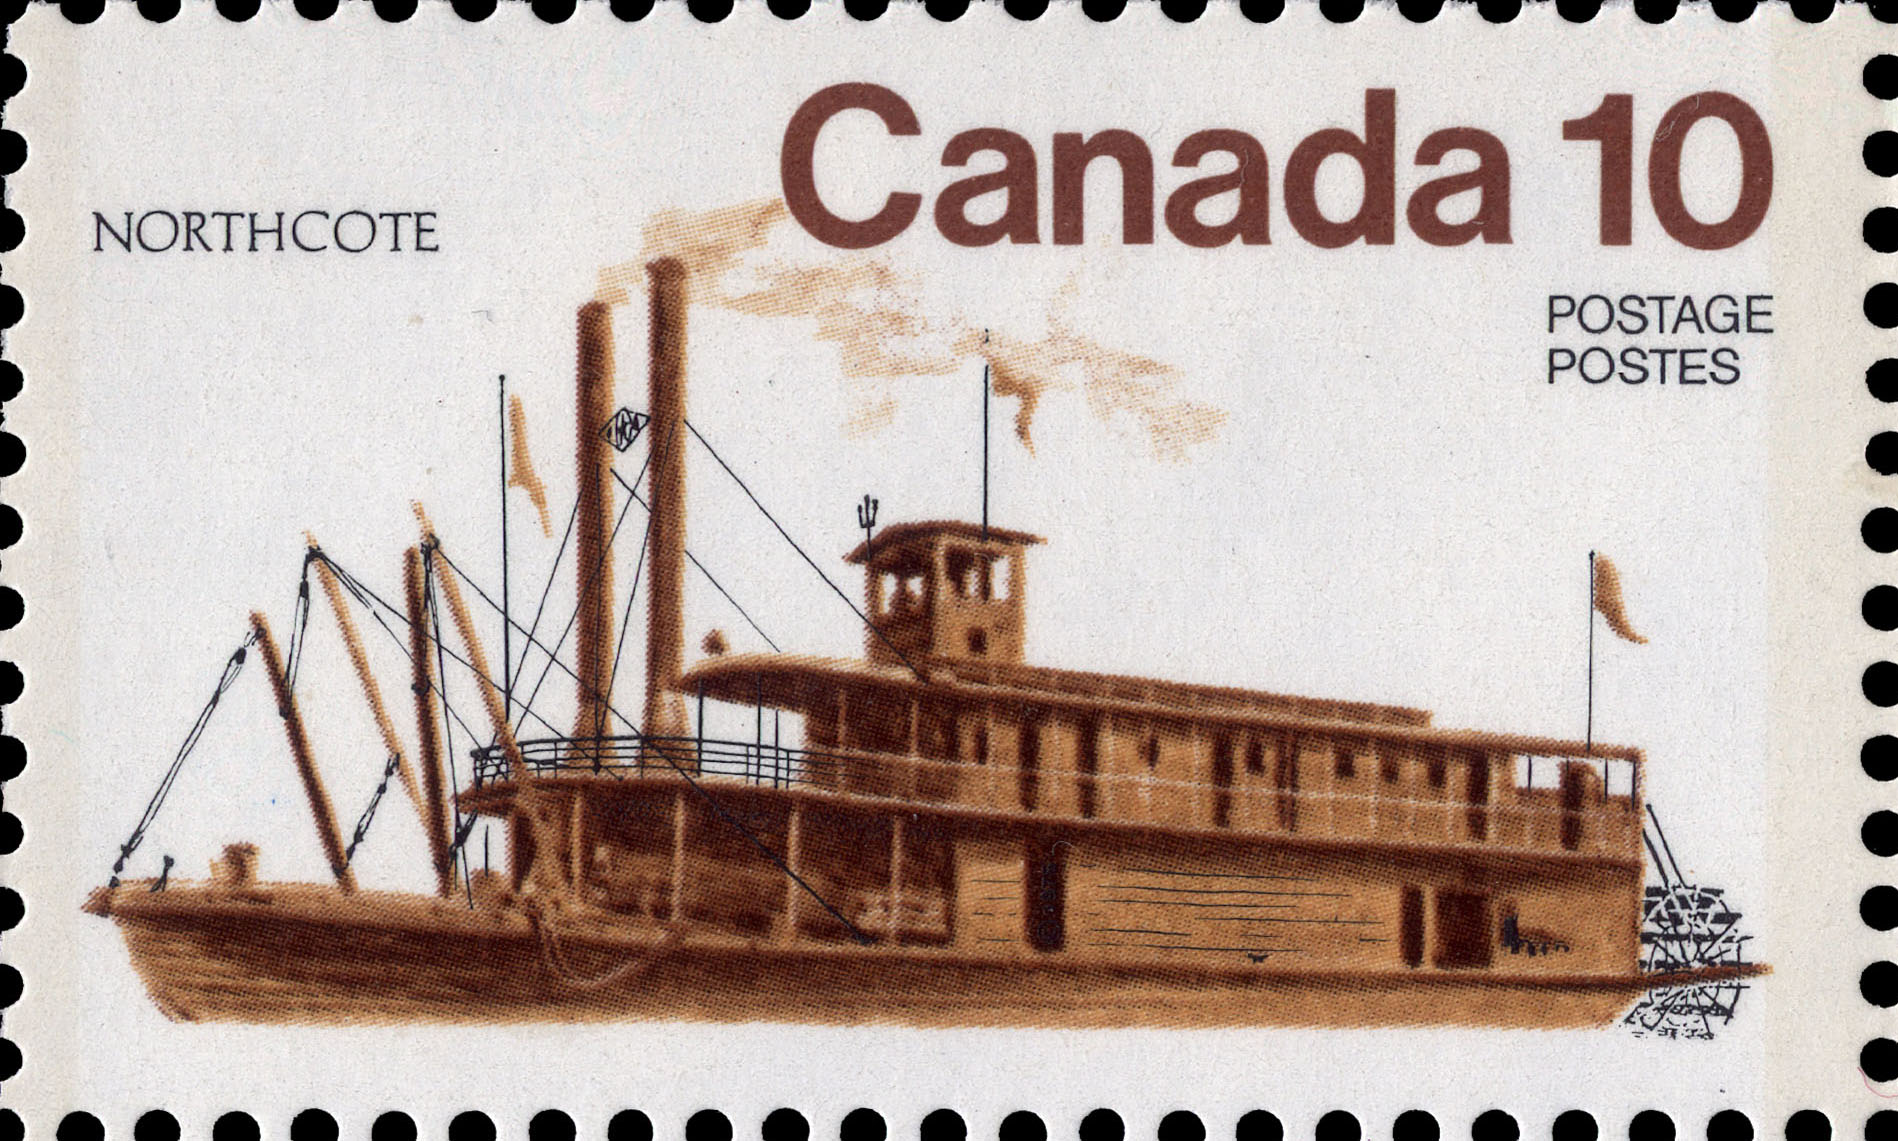 Northcote Canada Postage Stamp